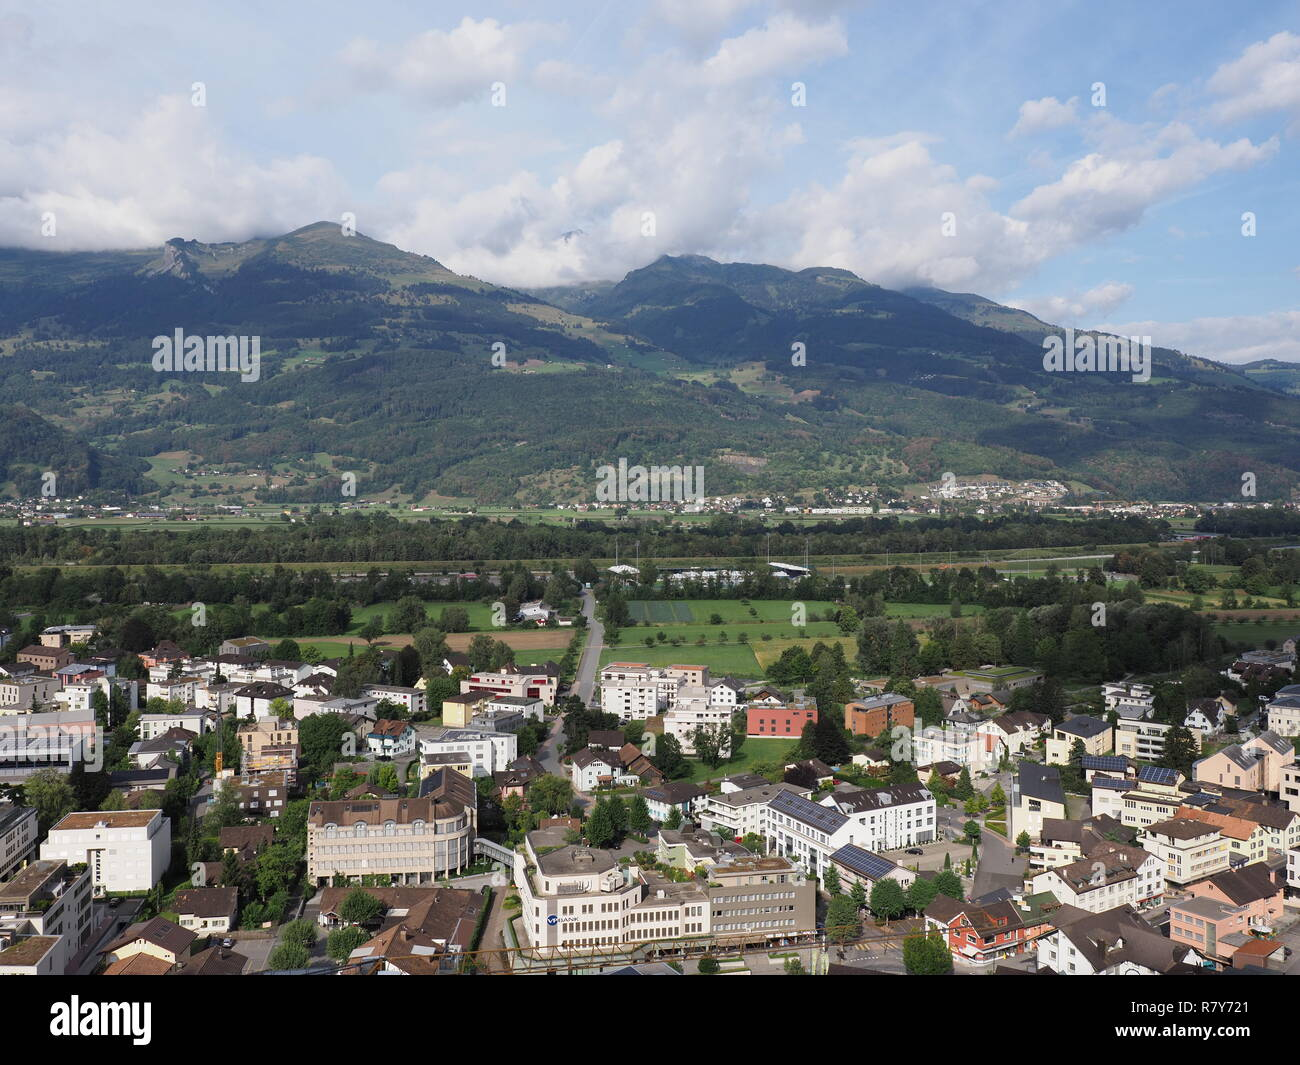 Amazing panorama of cityscape landscape of small european capital city of Vaduz in Liechtenstein - Stock Image